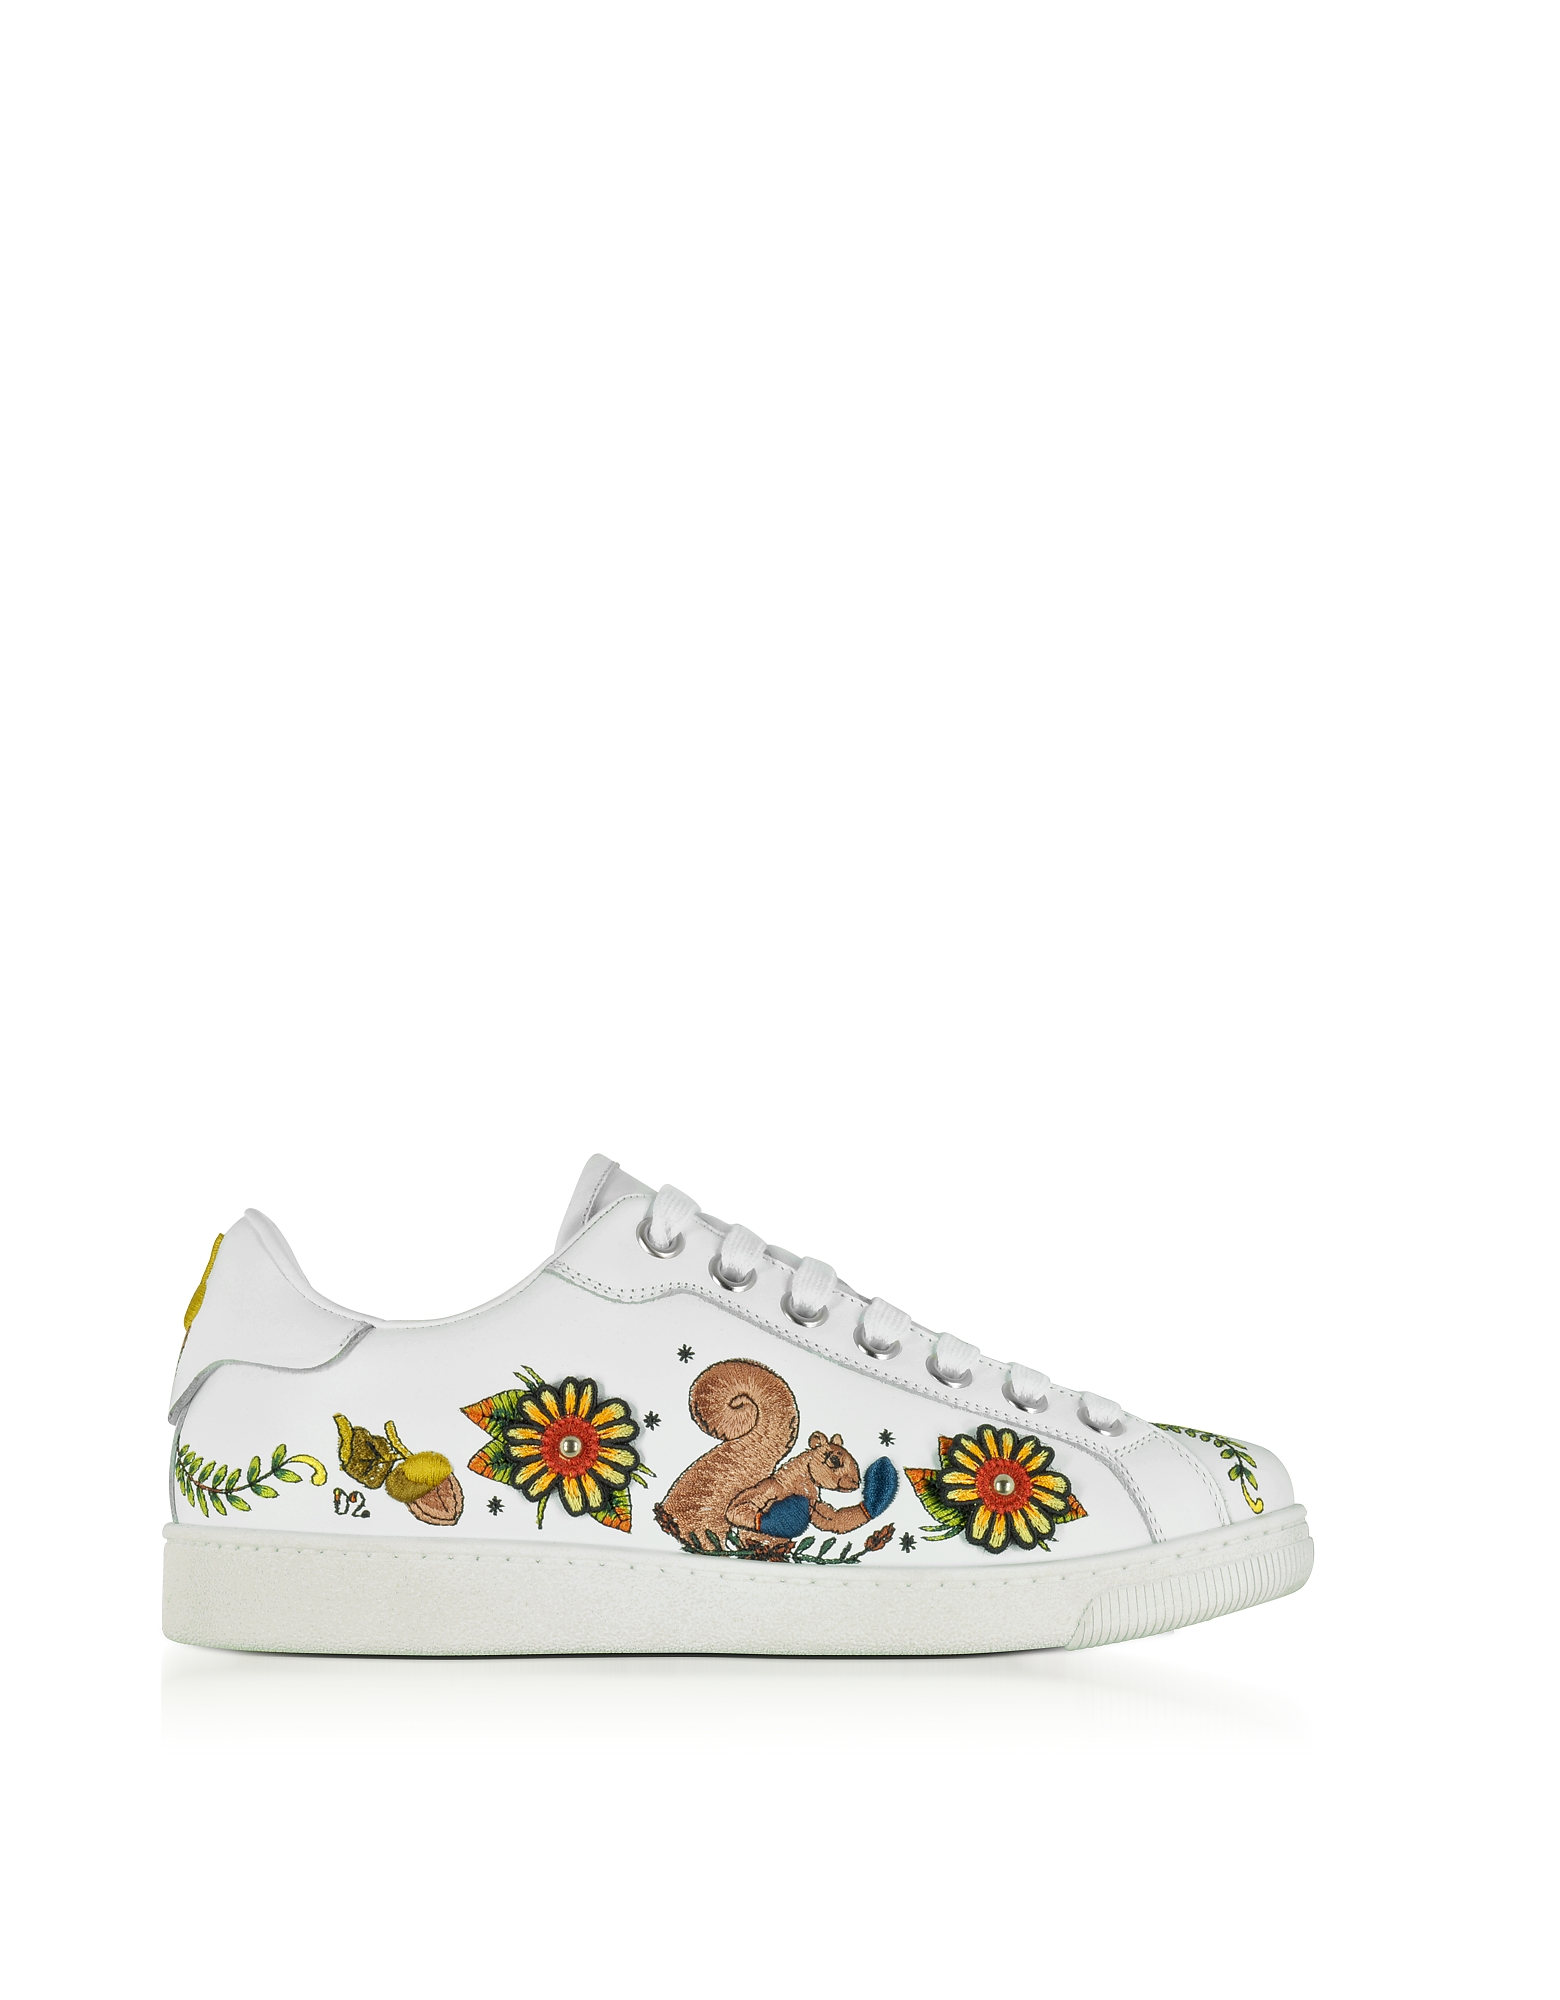 DSquared2 Shoes, Embroidered White Leather Women's Sneakers